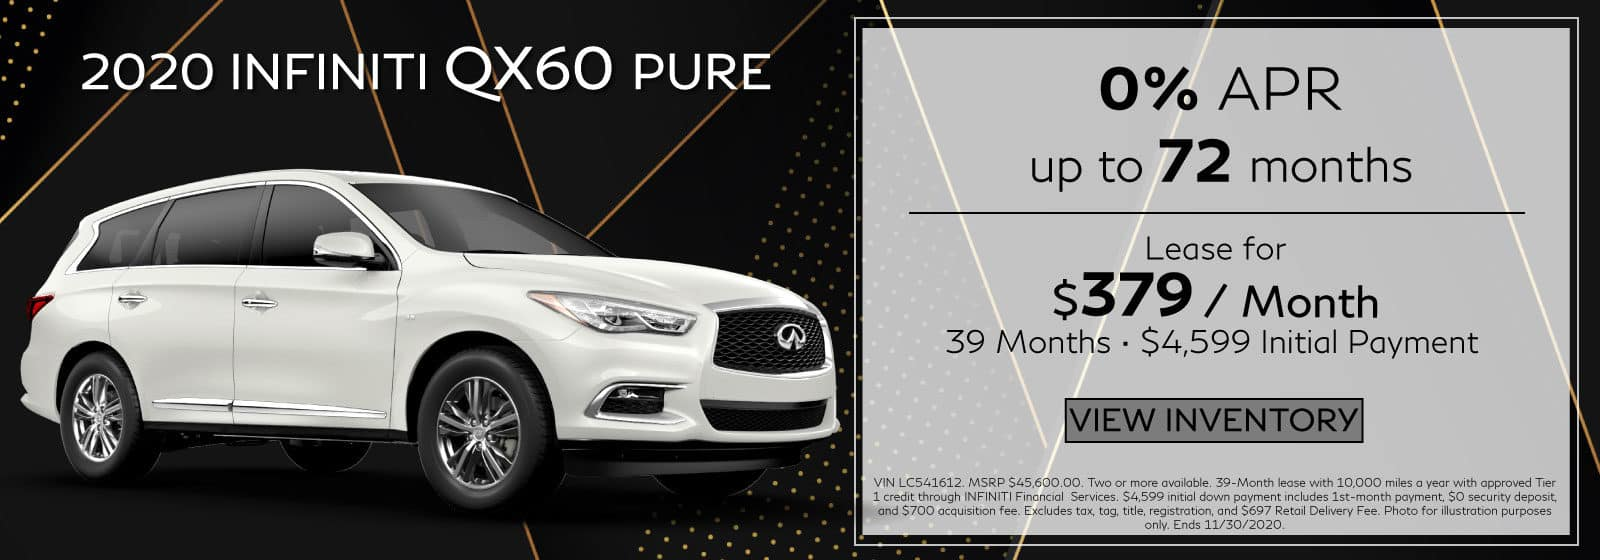 2020 QX60 PURE. $379/mo for 39 months. $4,599 Initial Payment